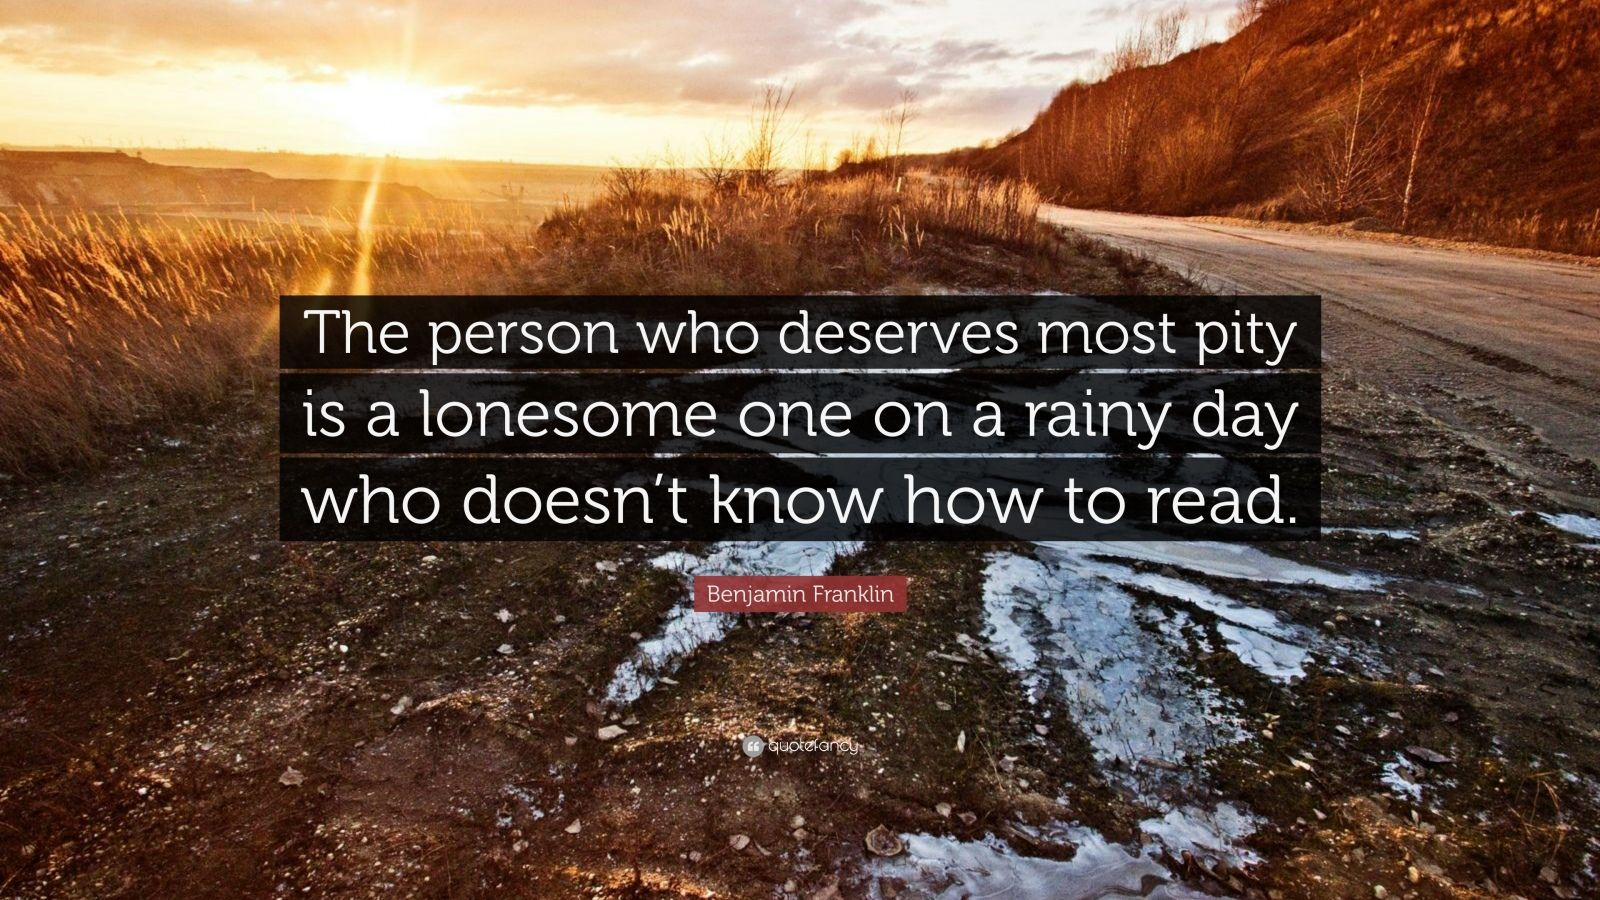 """Benjamin Franklin Quote: """"The person who deserves most pity is a lonesome one on a rainy day who doesn't know how to read."""""""